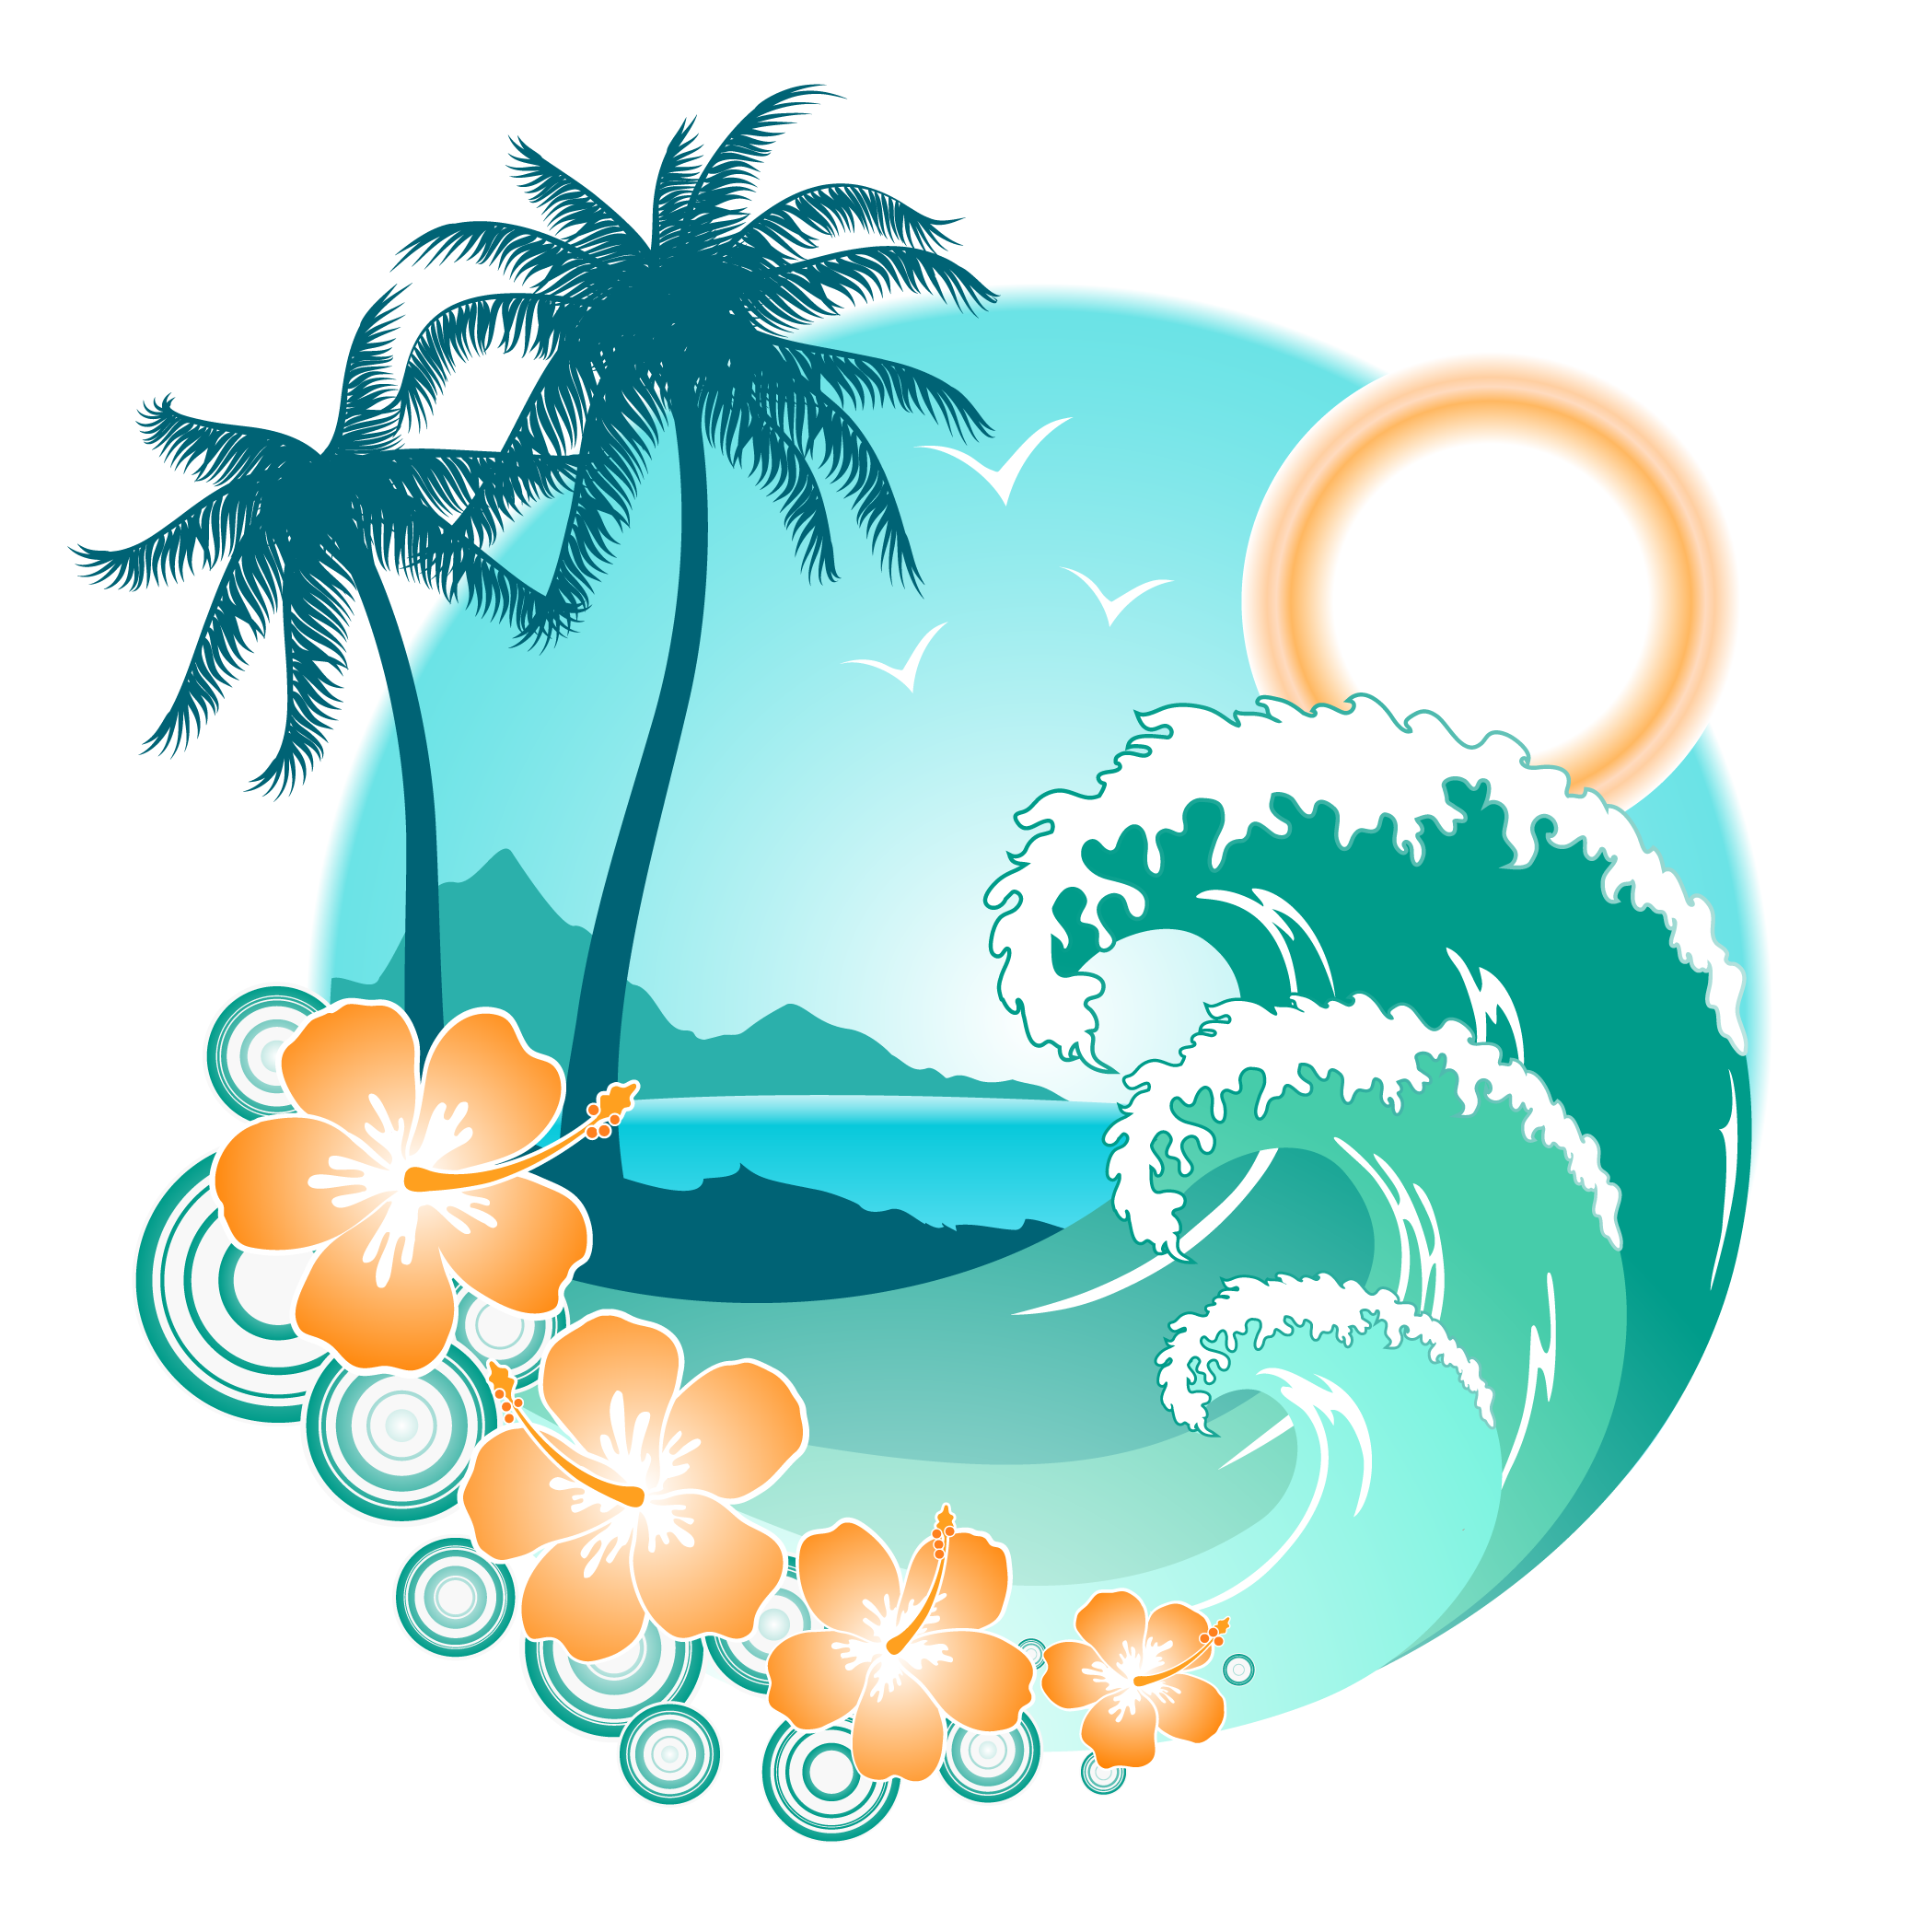 Holidays Png Transparent Images Png All Moana Wave.